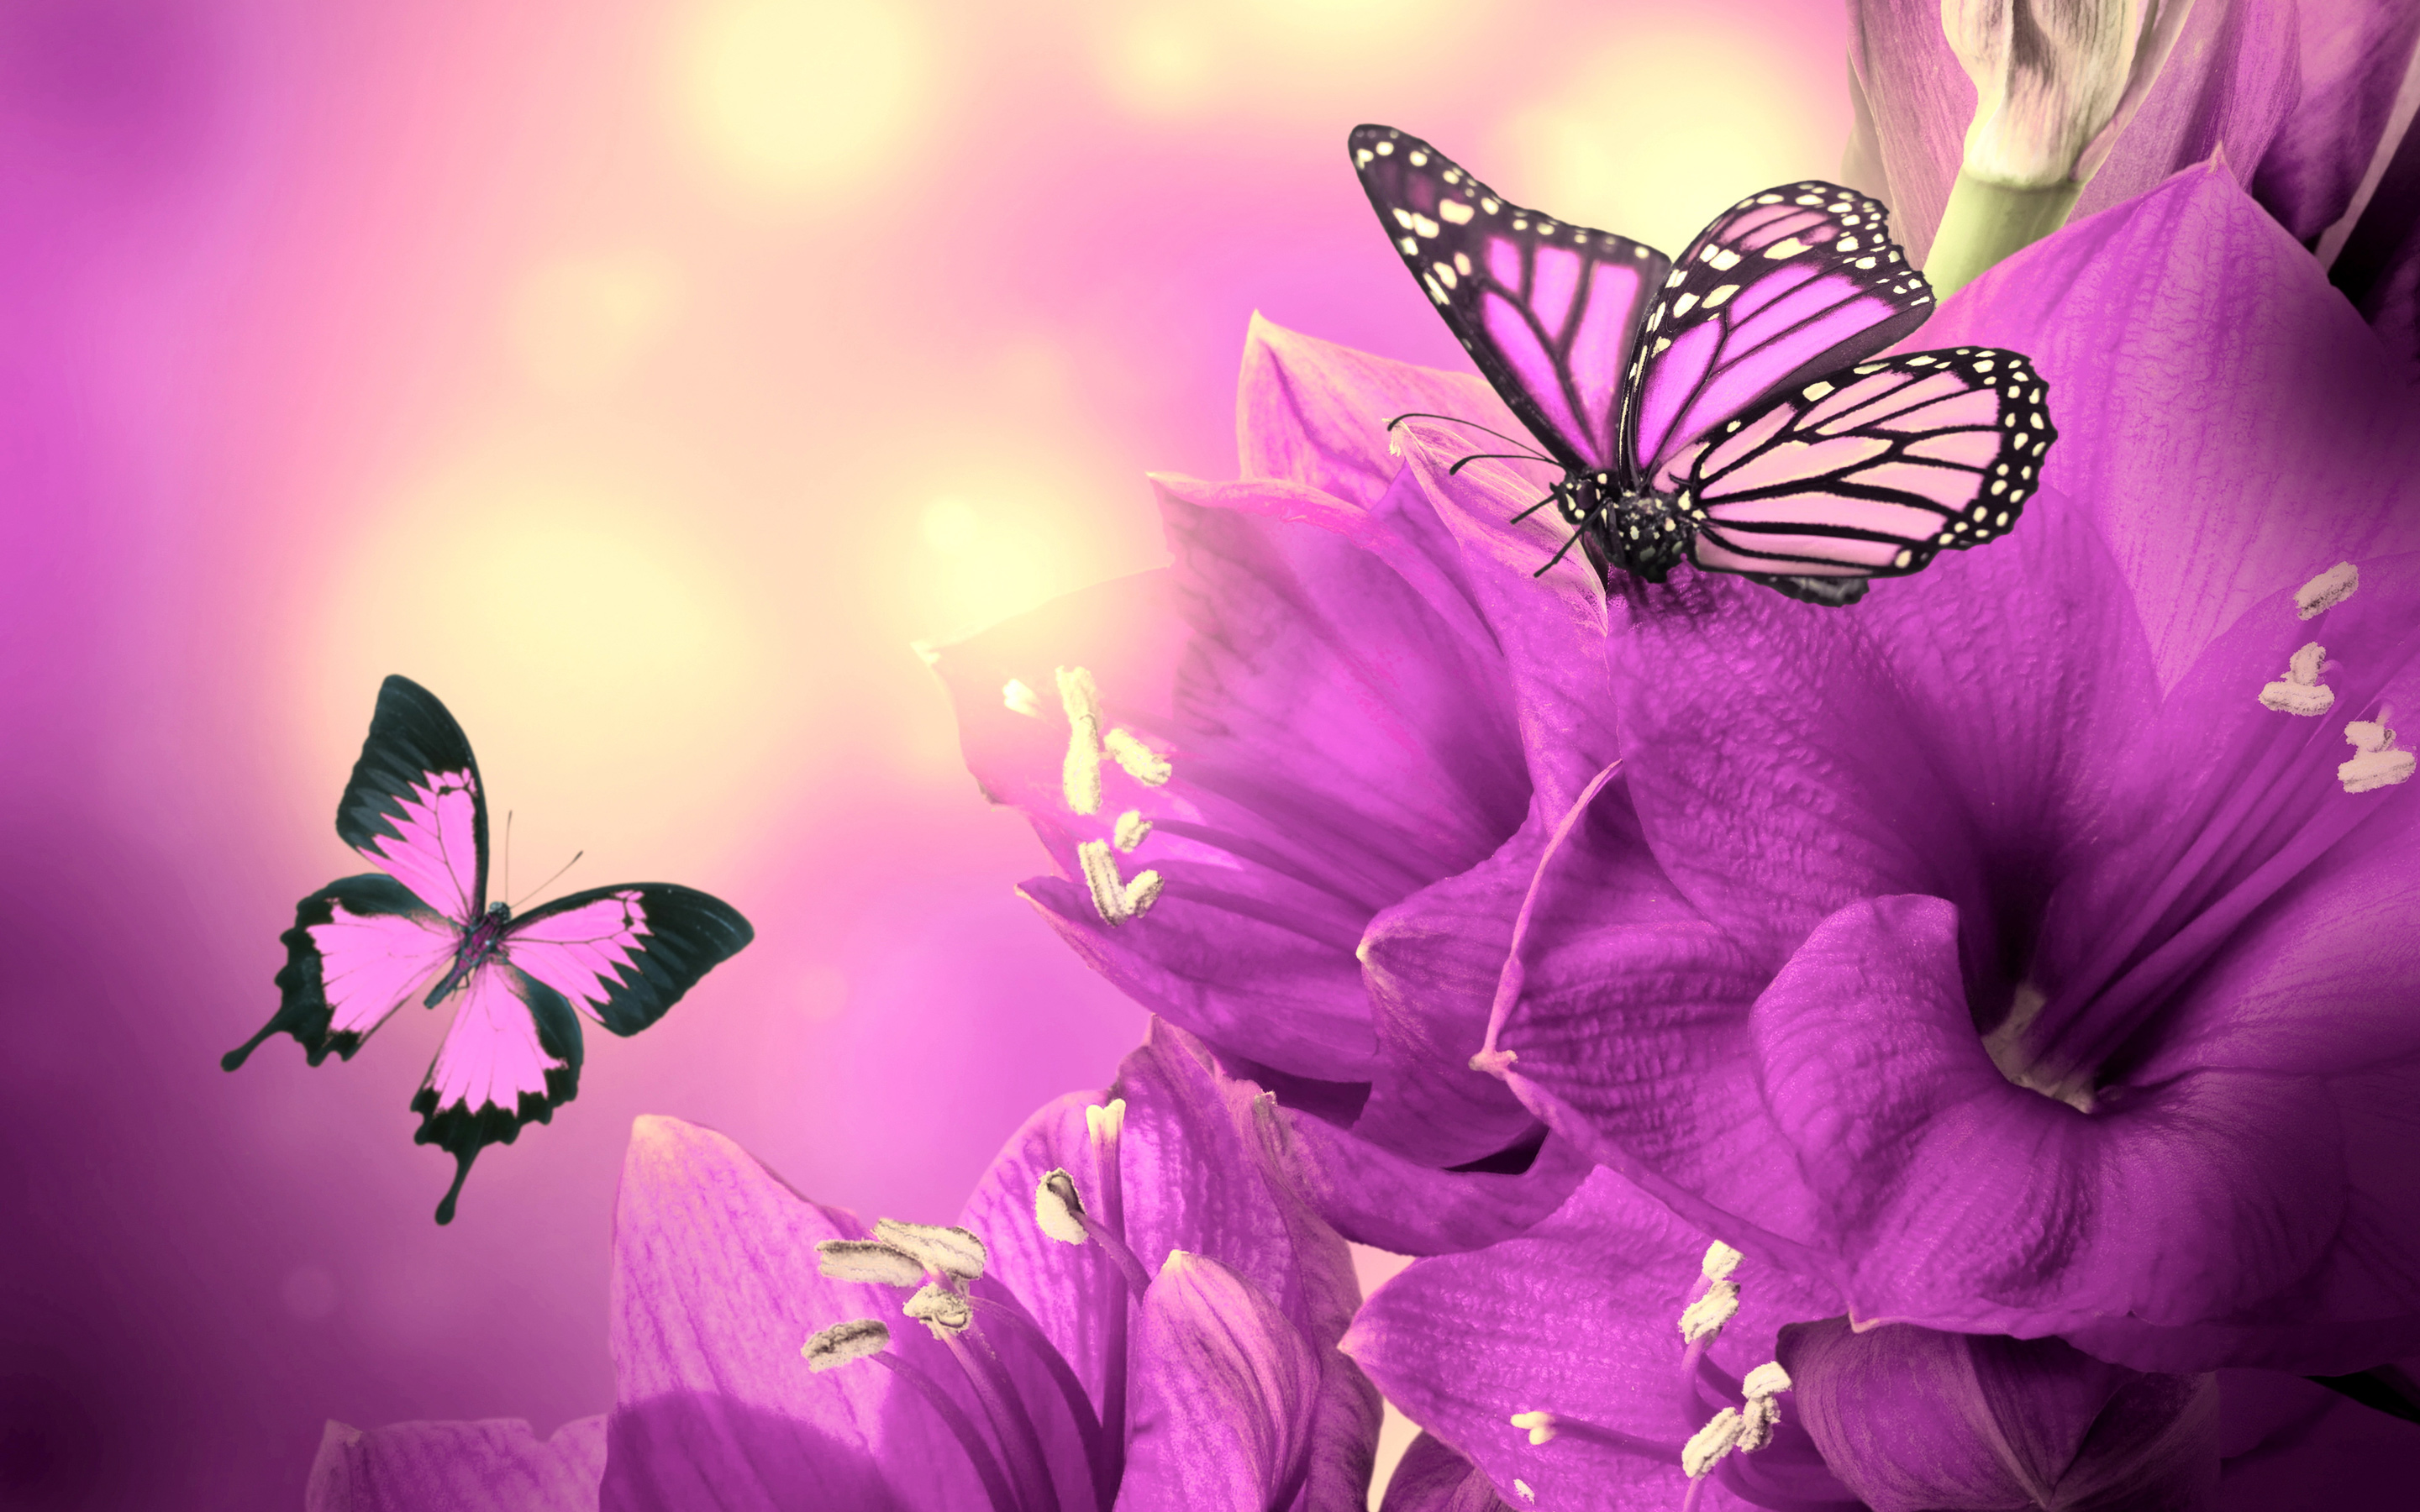 Butterflies Wallpapers Hd Download: Beautiful Butterflies Wallpapers, Pictures, Images